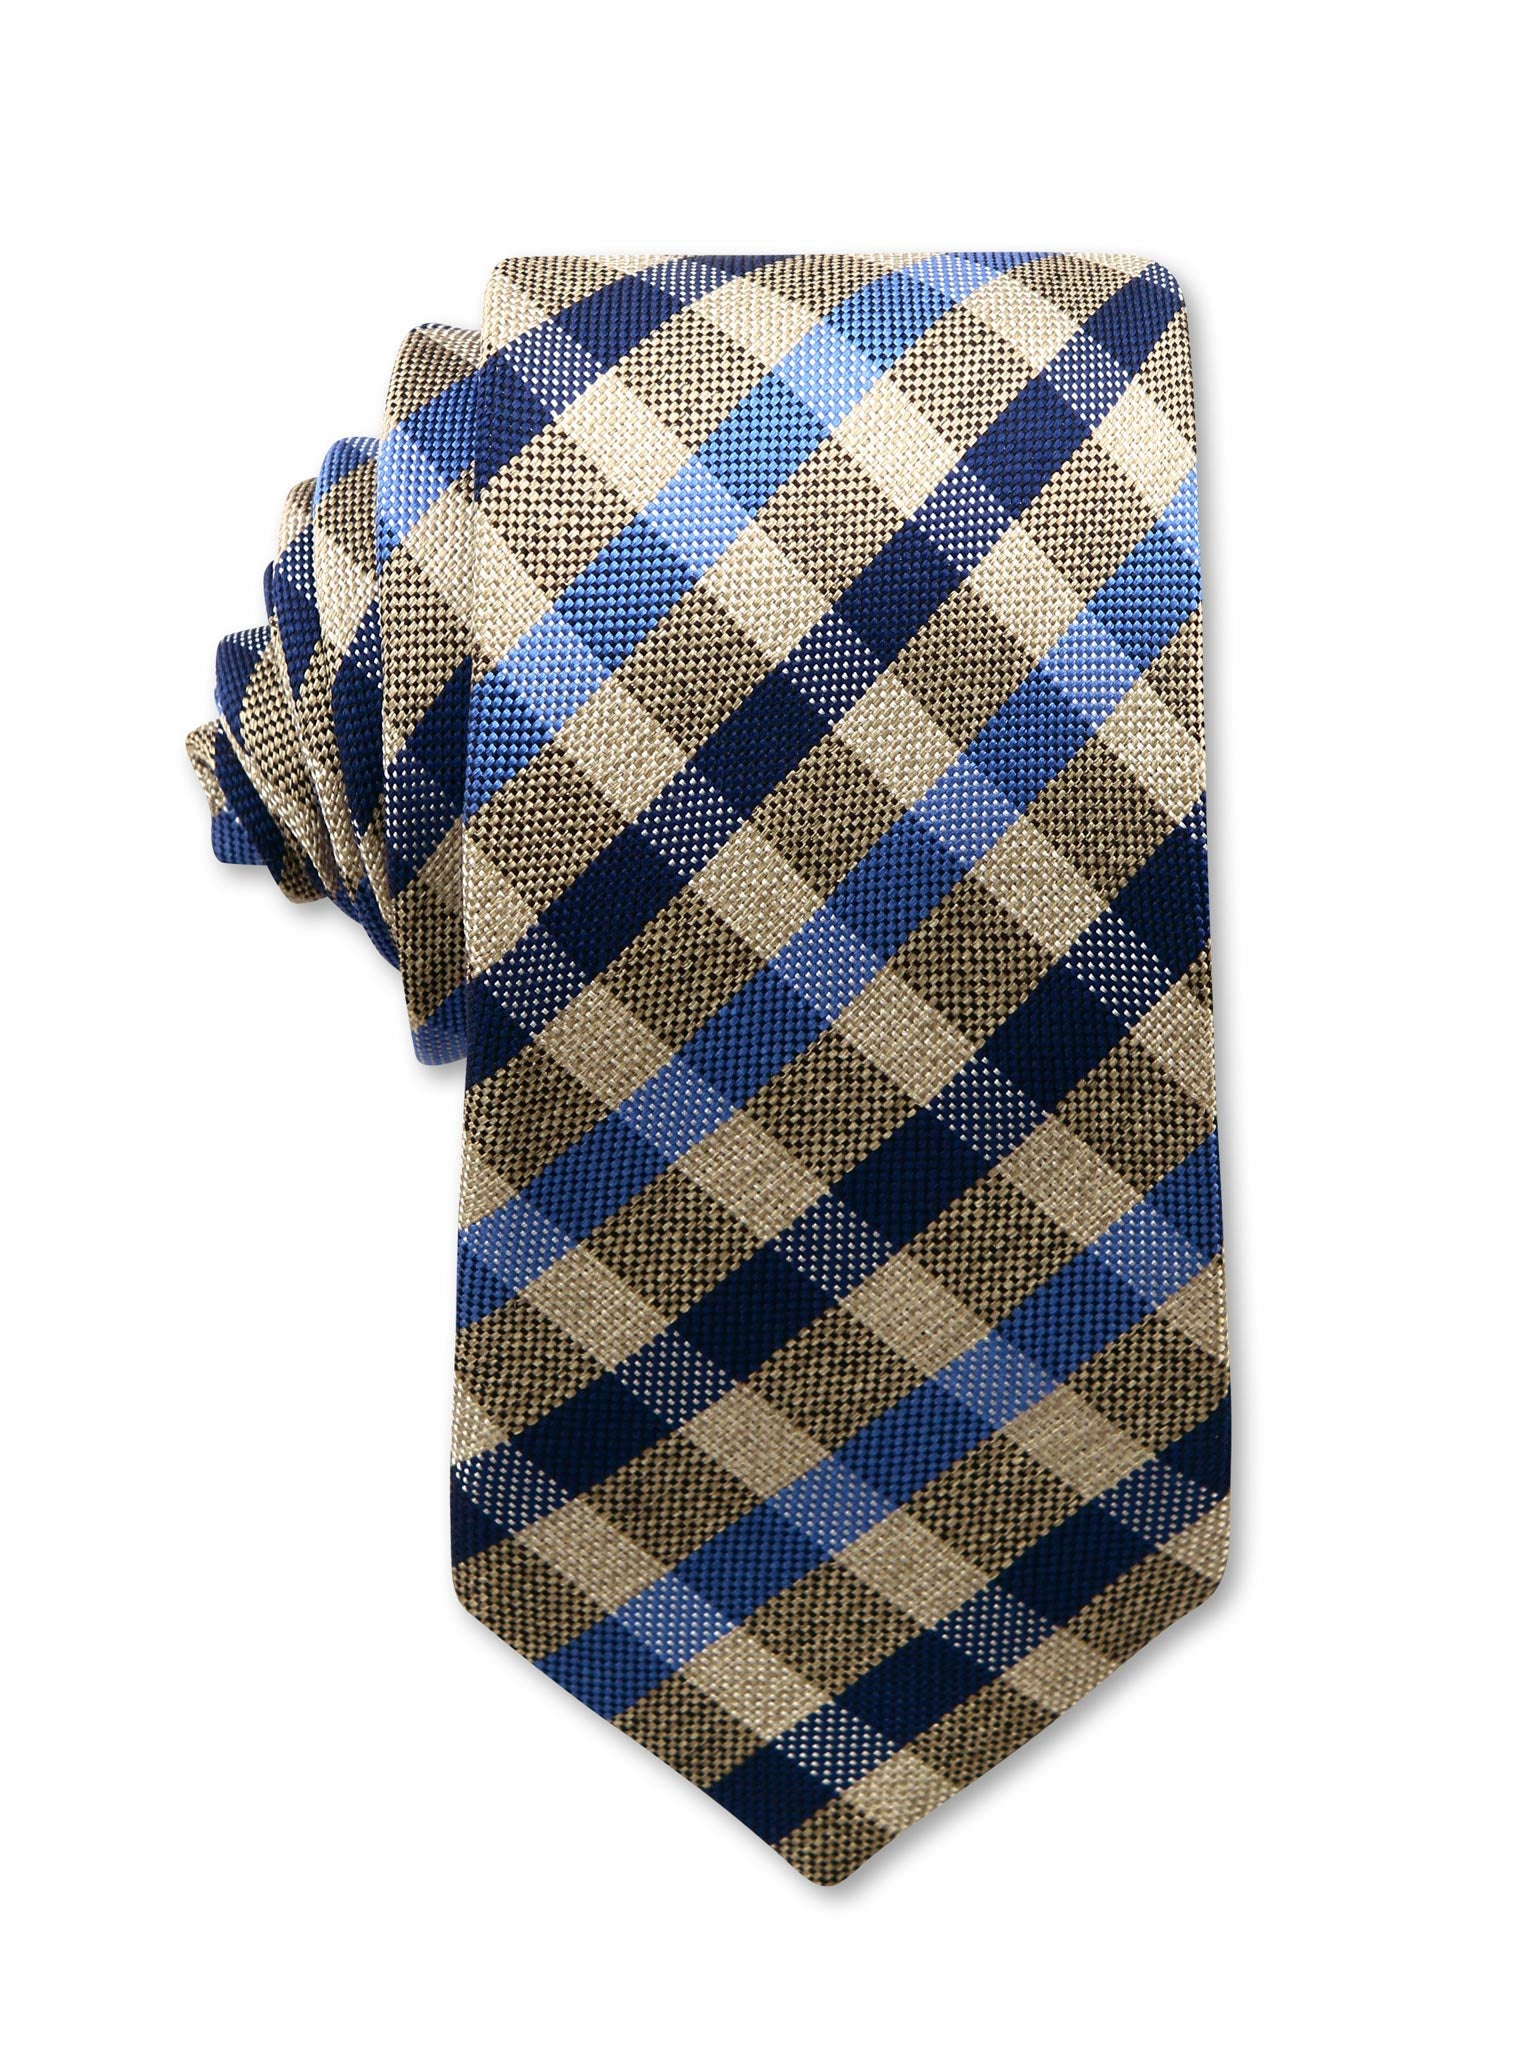 Brown Blue Black Check 7cm Italian Silk Tie Made in Australia